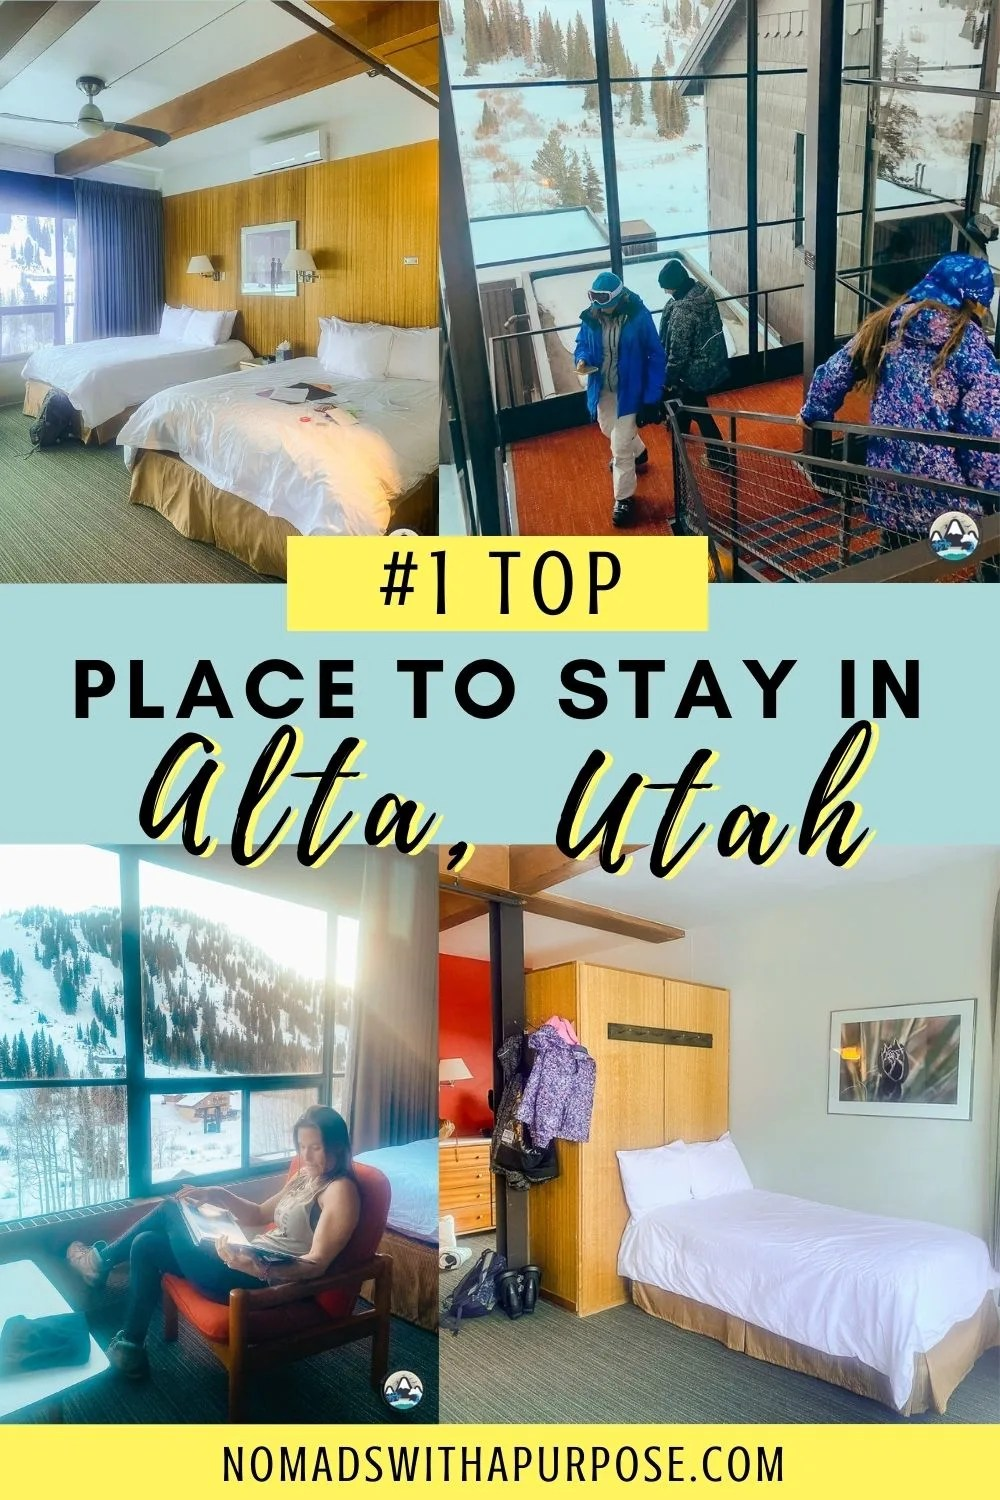 Top Place to Stay in Alta, Utah